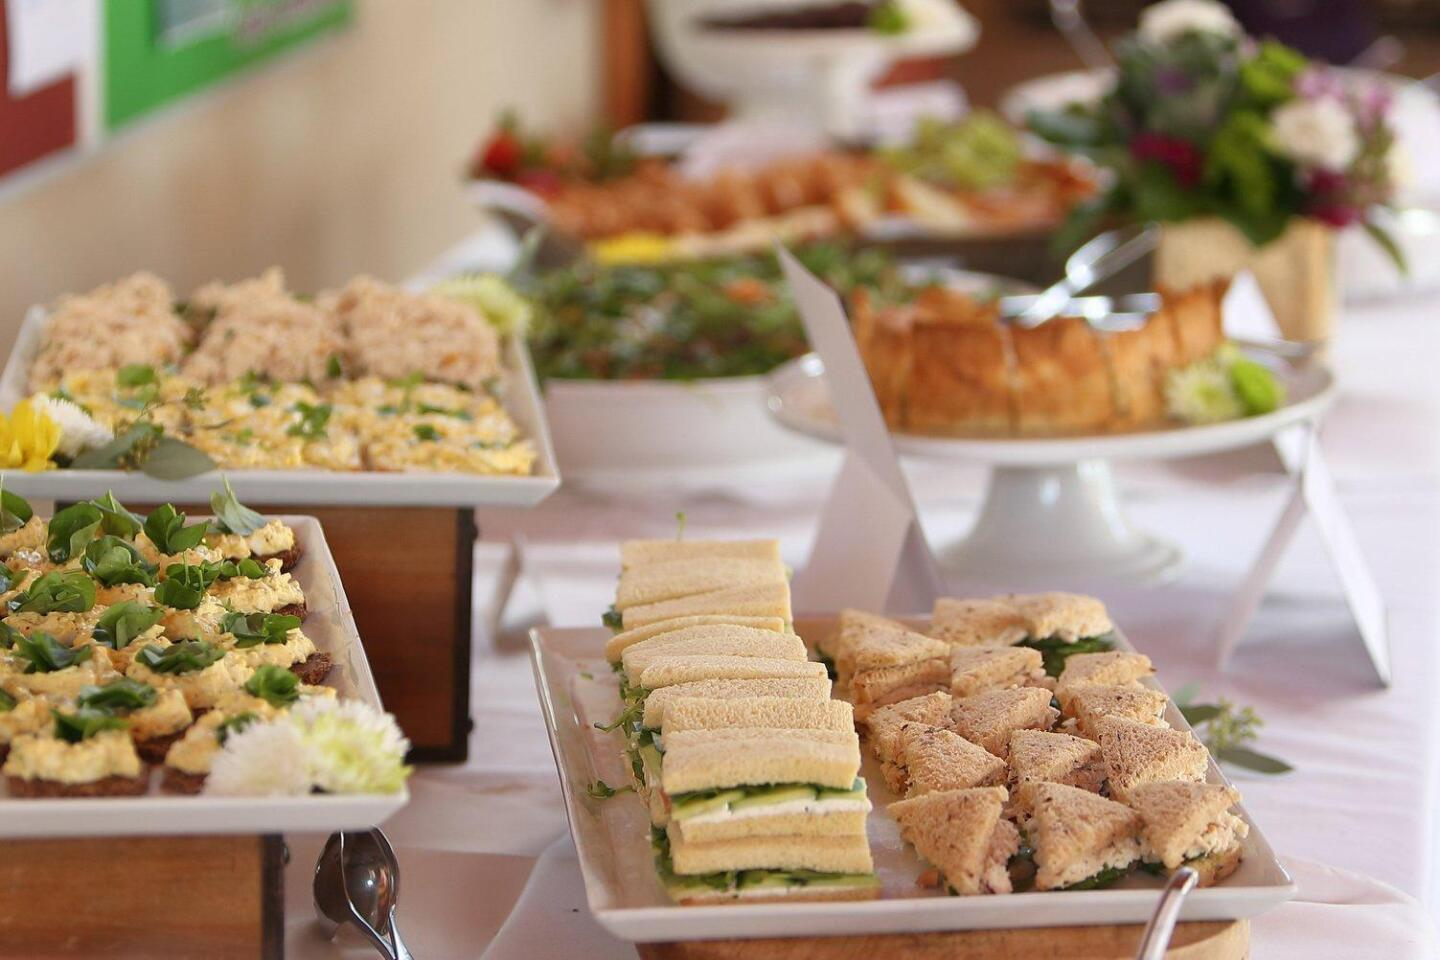 The Wimbledon Whites event included a delicious buffet lunch from 'Something Homemade'